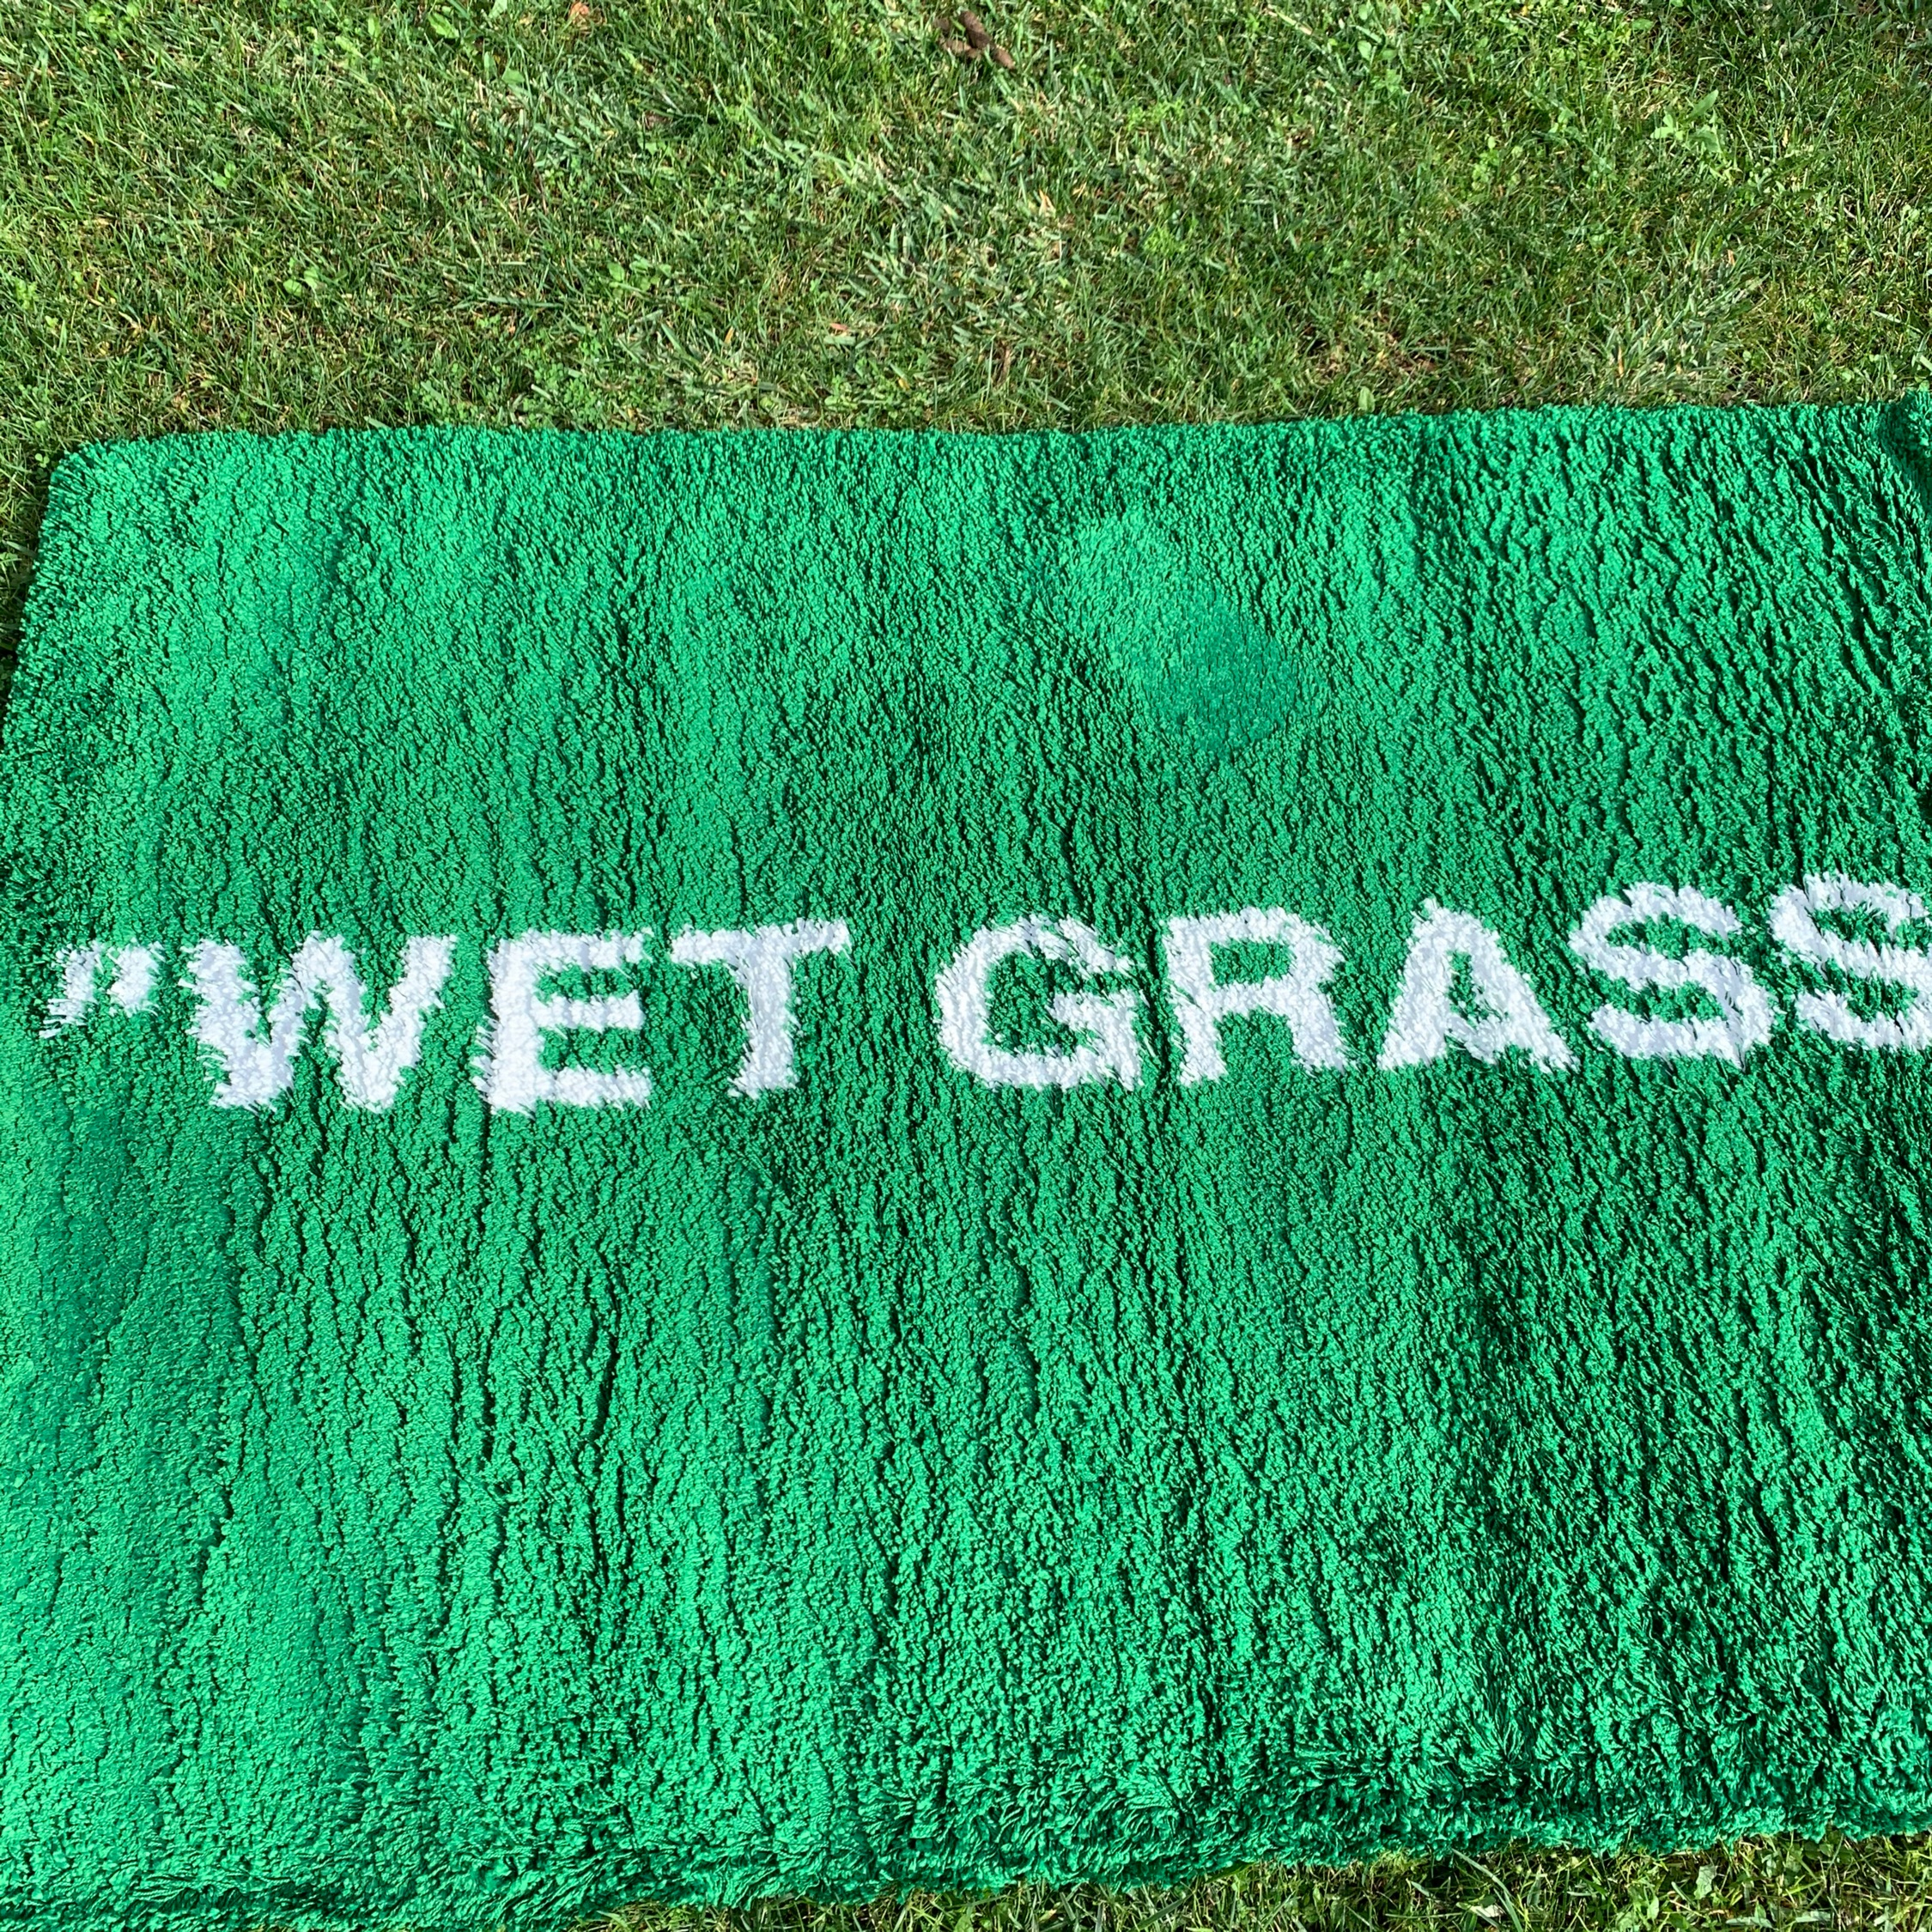 Ikea X Virgil Abloh Rug Wet Grass